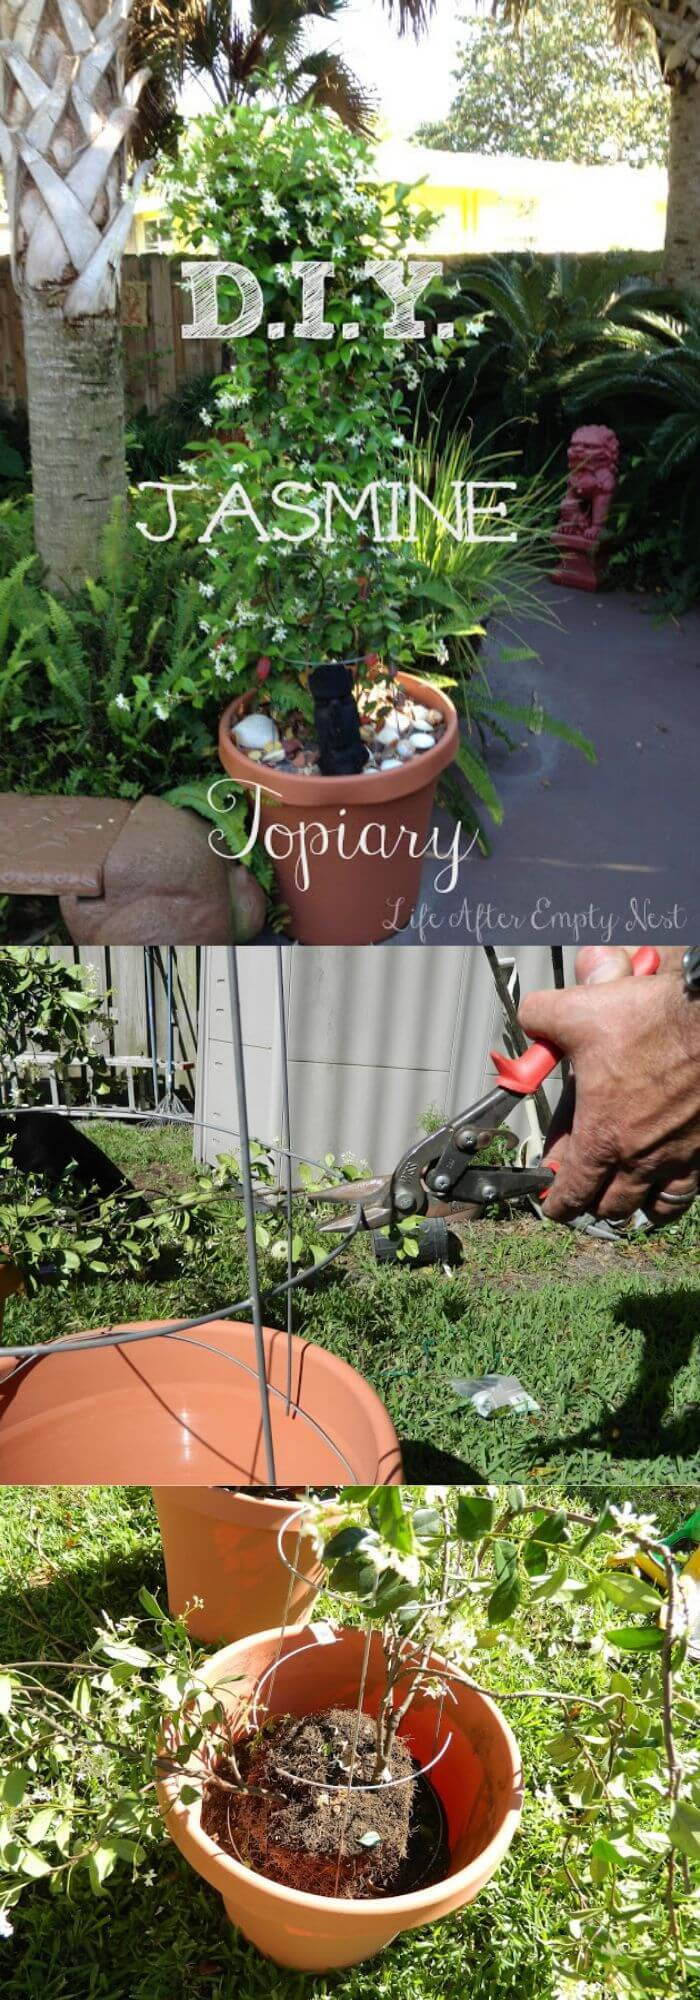 how to make a topiary tree in pot for beginners DIY Jasmine Topiary